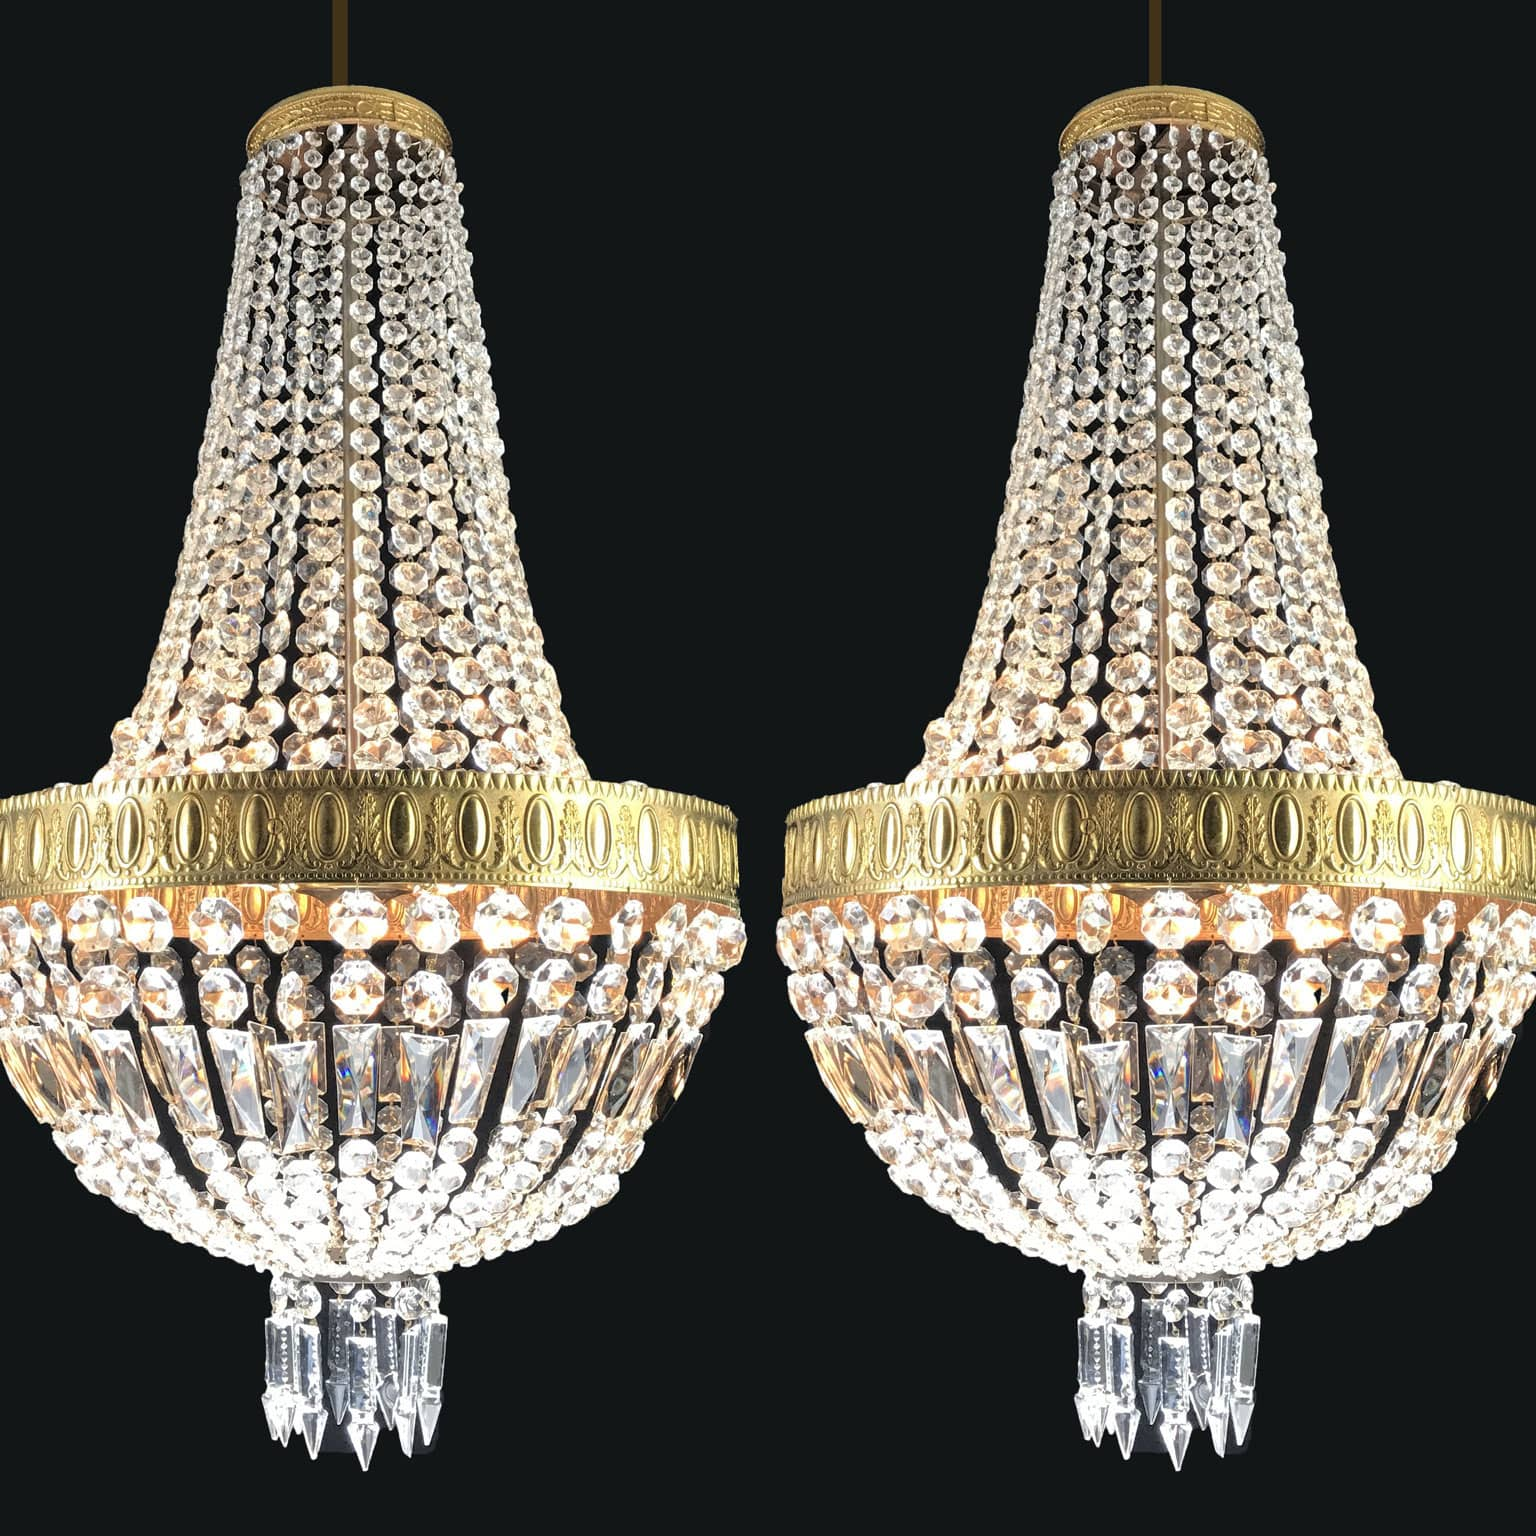 Coppia di lampadari impero in cristallo for Accessori lampadari